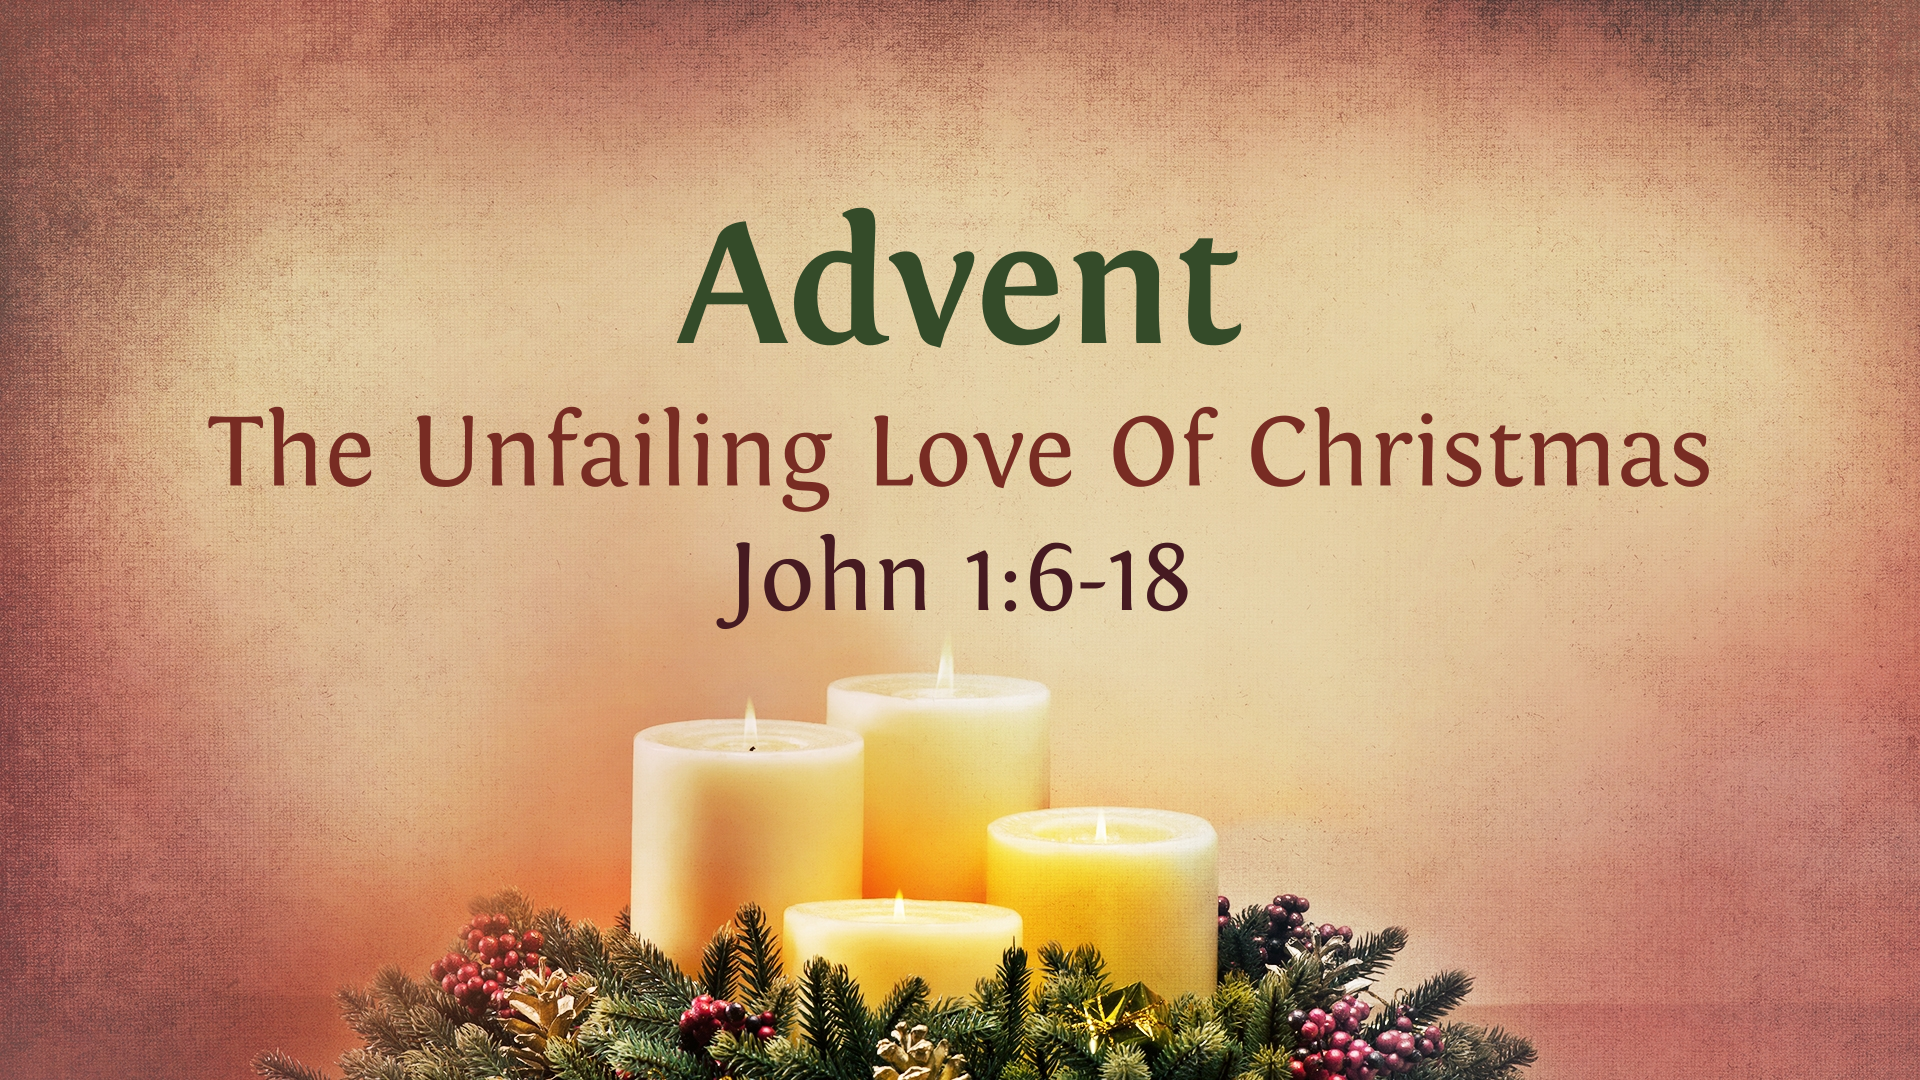 the unfailing love of Christmas